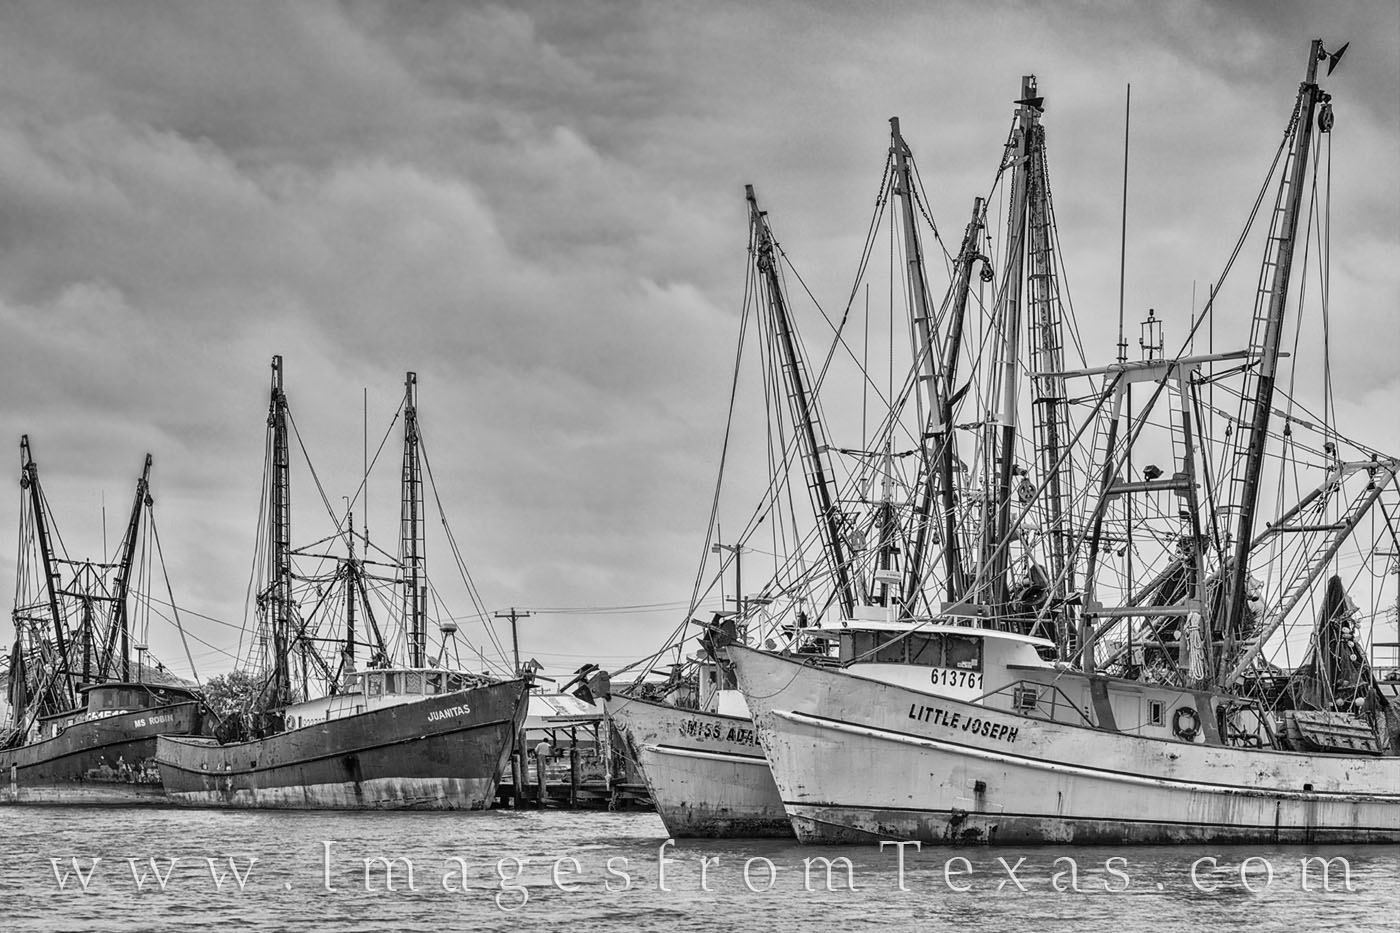 Shimp boats rest easy along a dock in Port Isabel, just a few miles away from the resort area of South Padre Island. The skies...